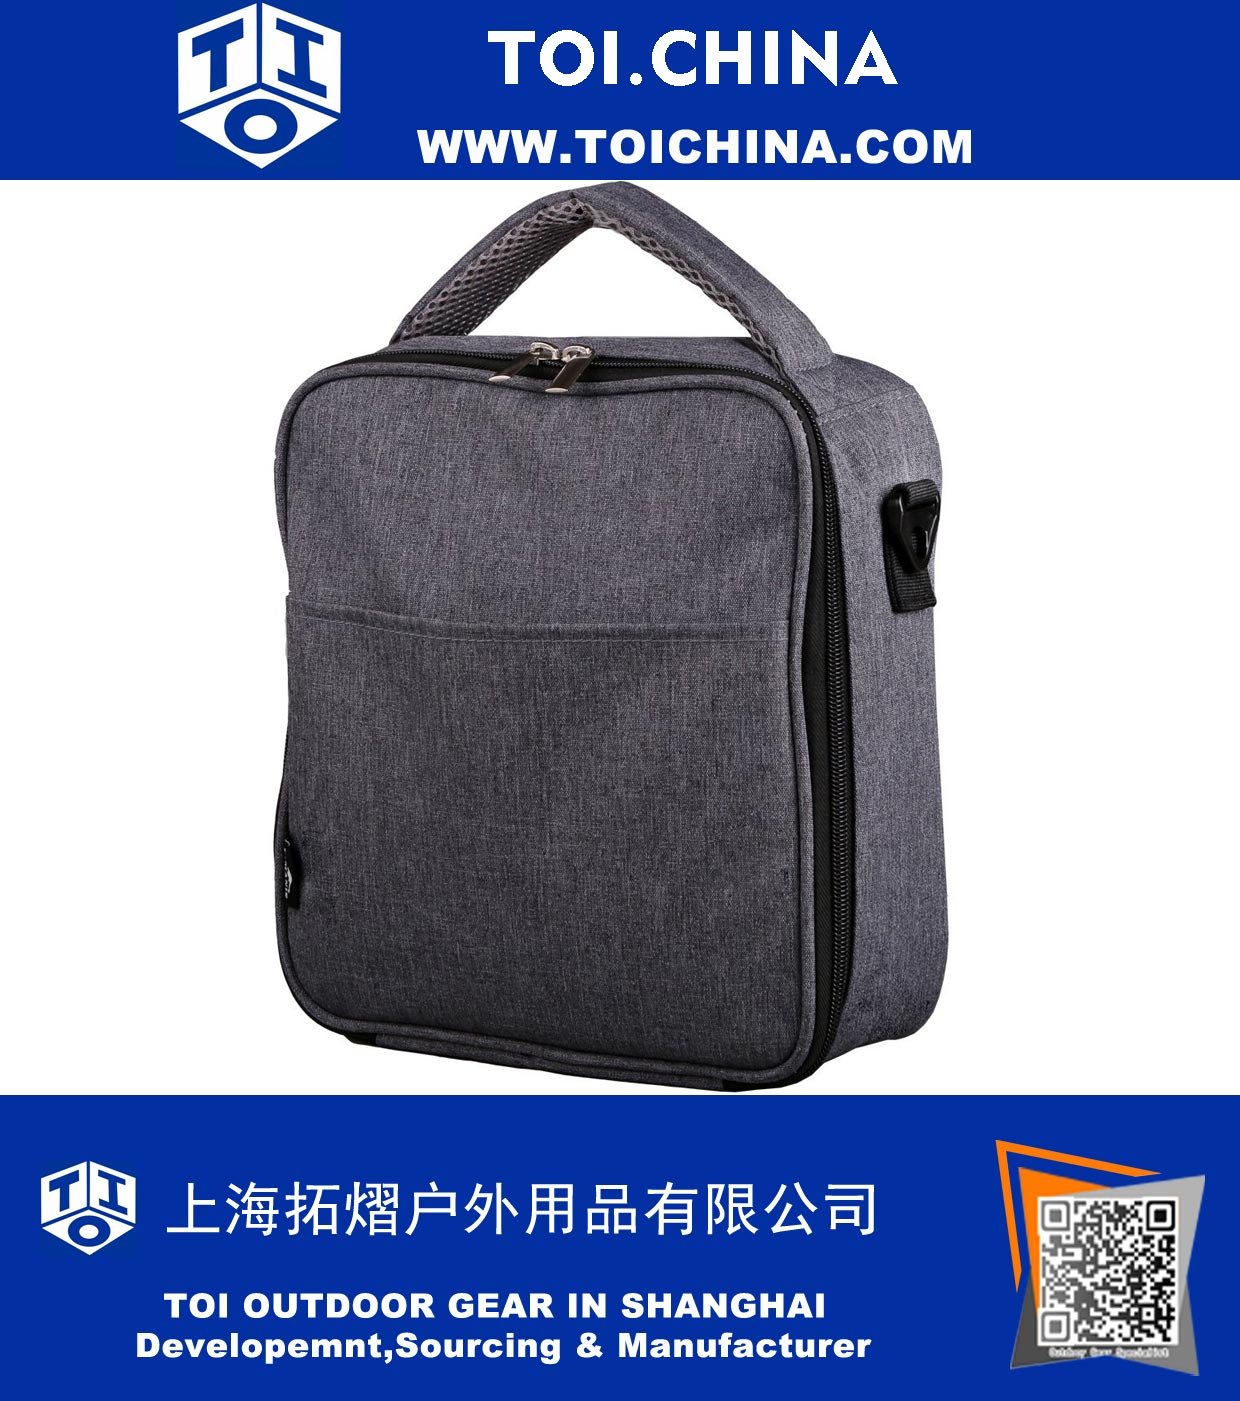 3f701d87b6f Insulated Lunch Bag Lunch Box Cooler Bag with Shoulder Strap, TY-CN085